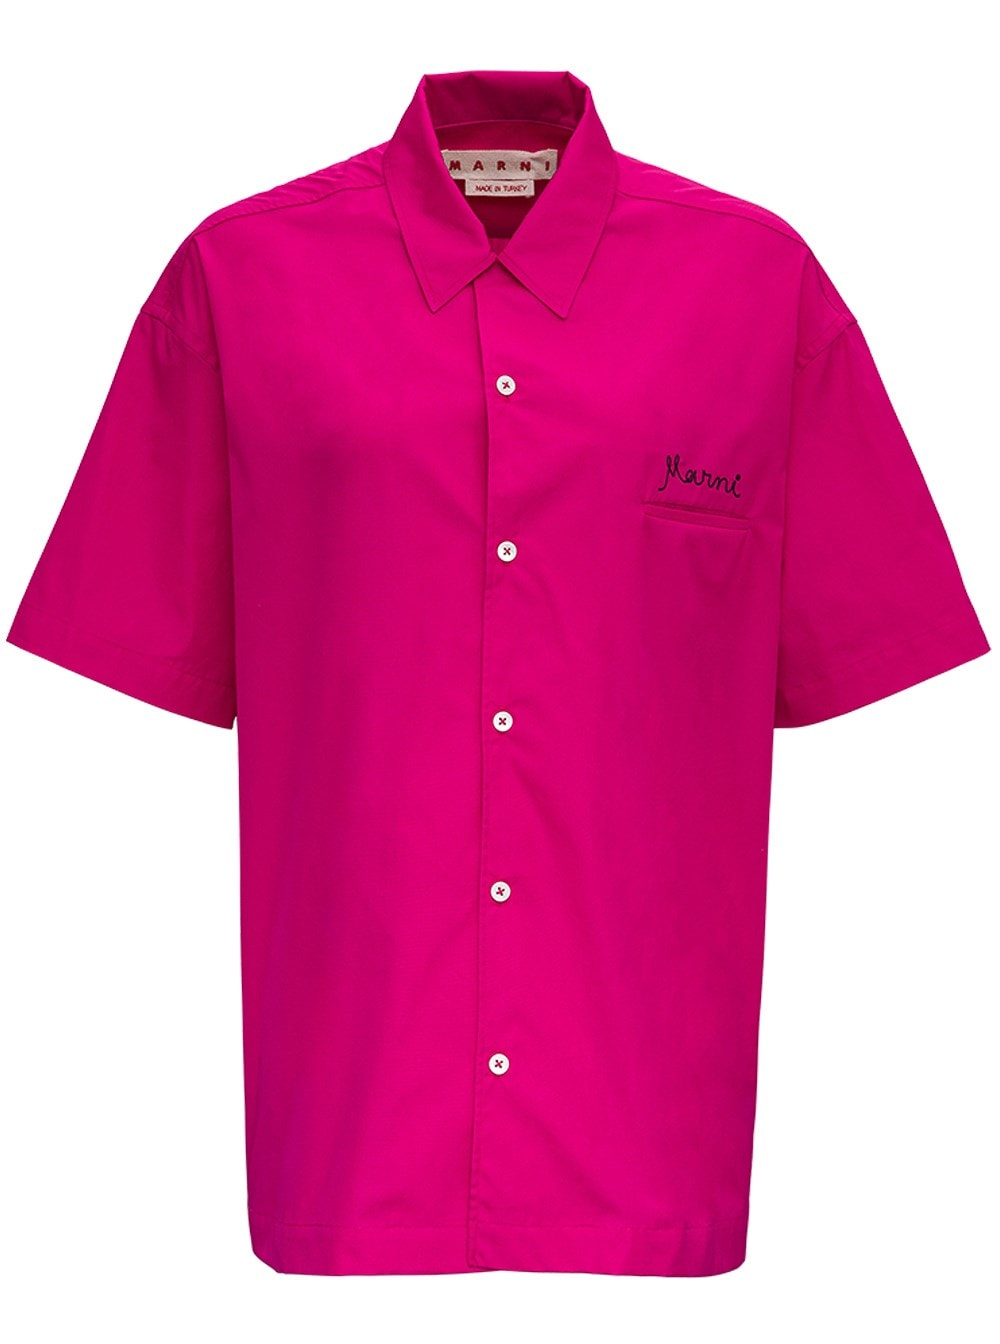 Marni PINK COTTON SHIRT WITH LOGO